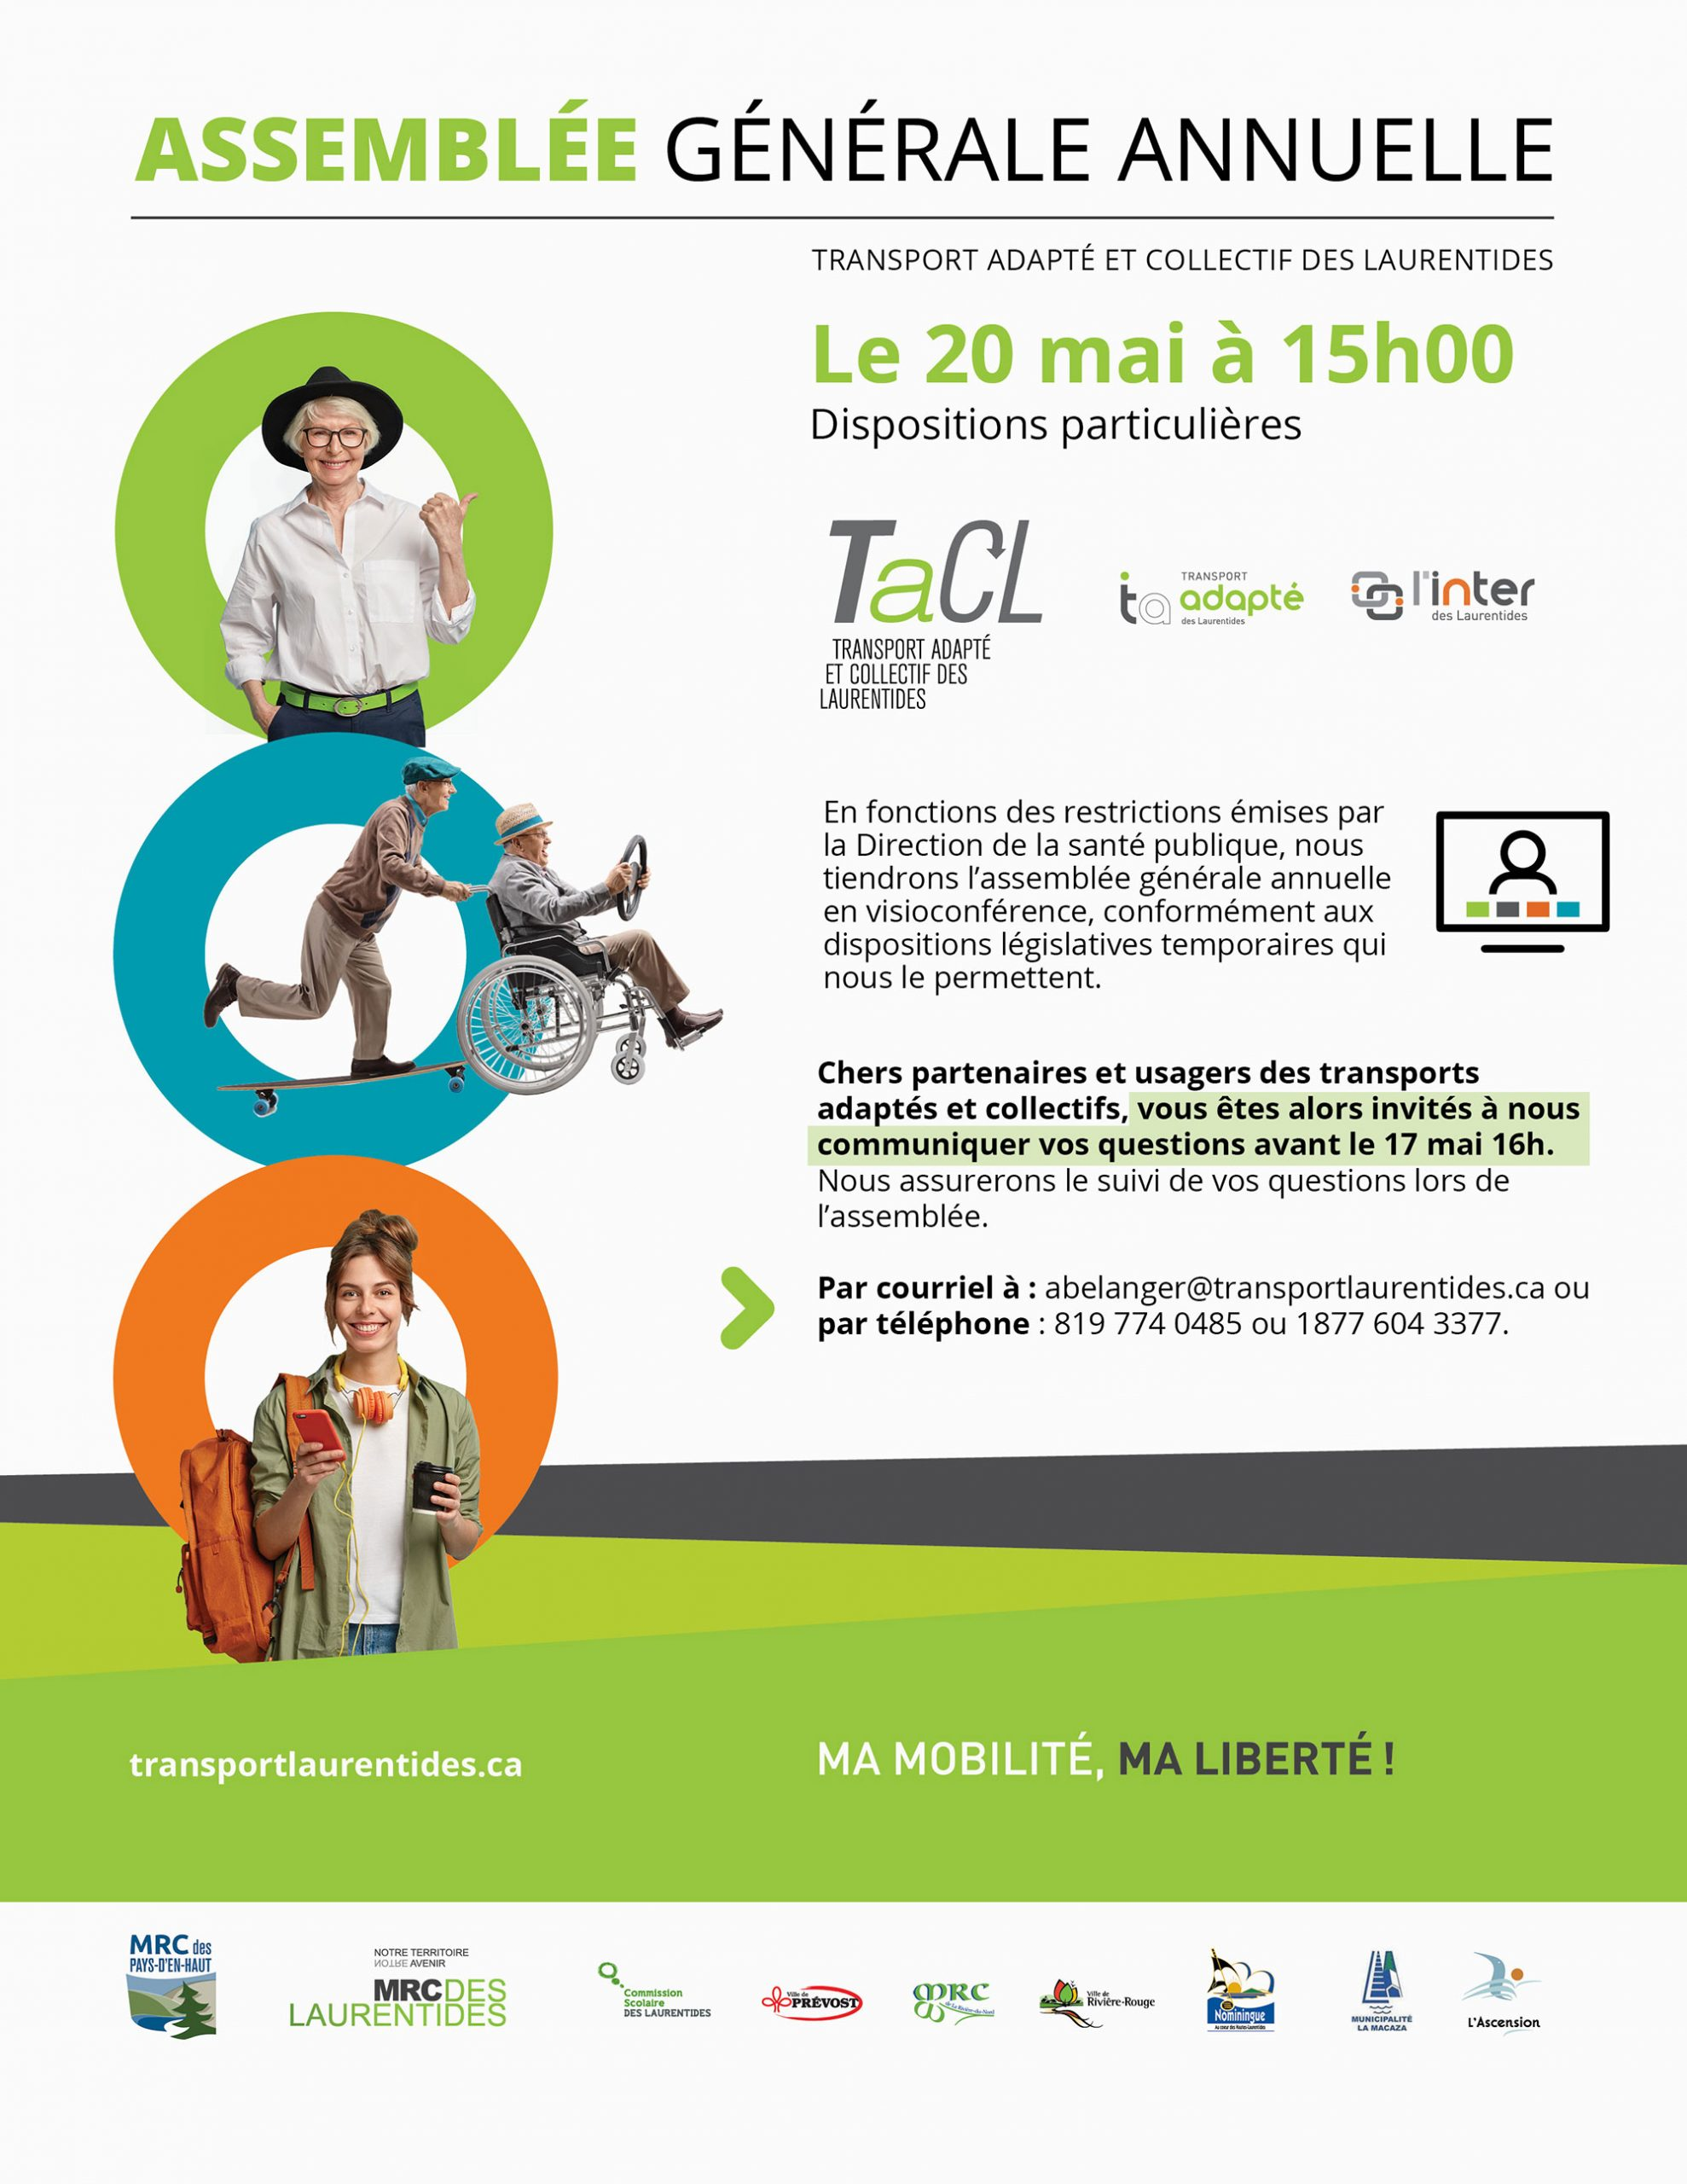 Assemblee annuelle TACL video conference